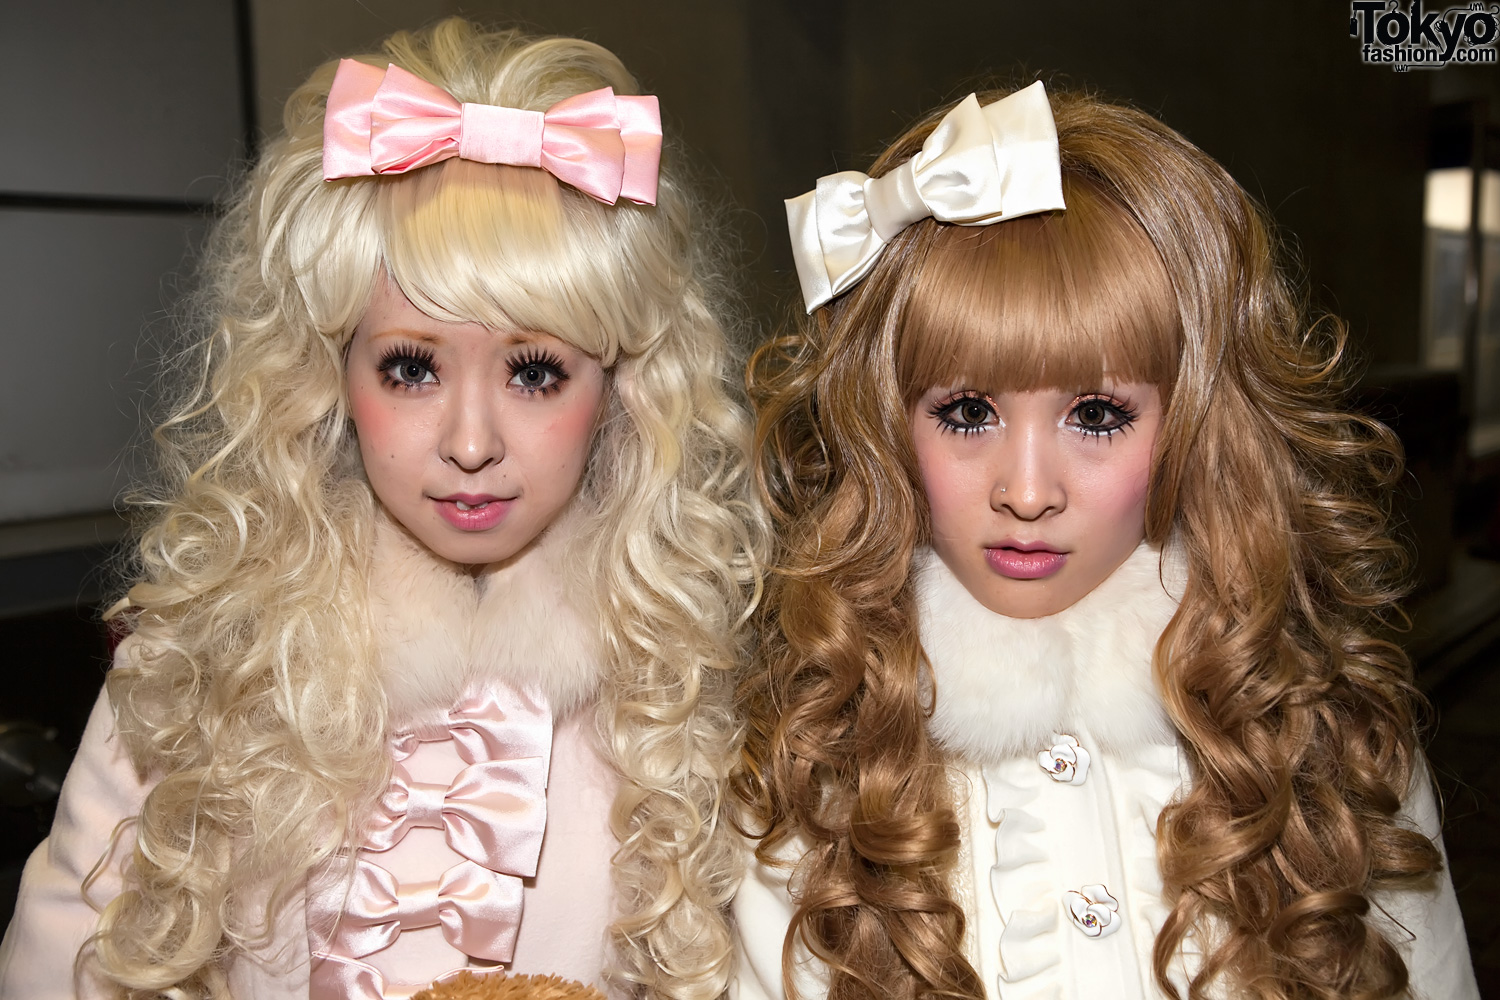 Is Shibuya Gyaru Culture In Decline If So Why